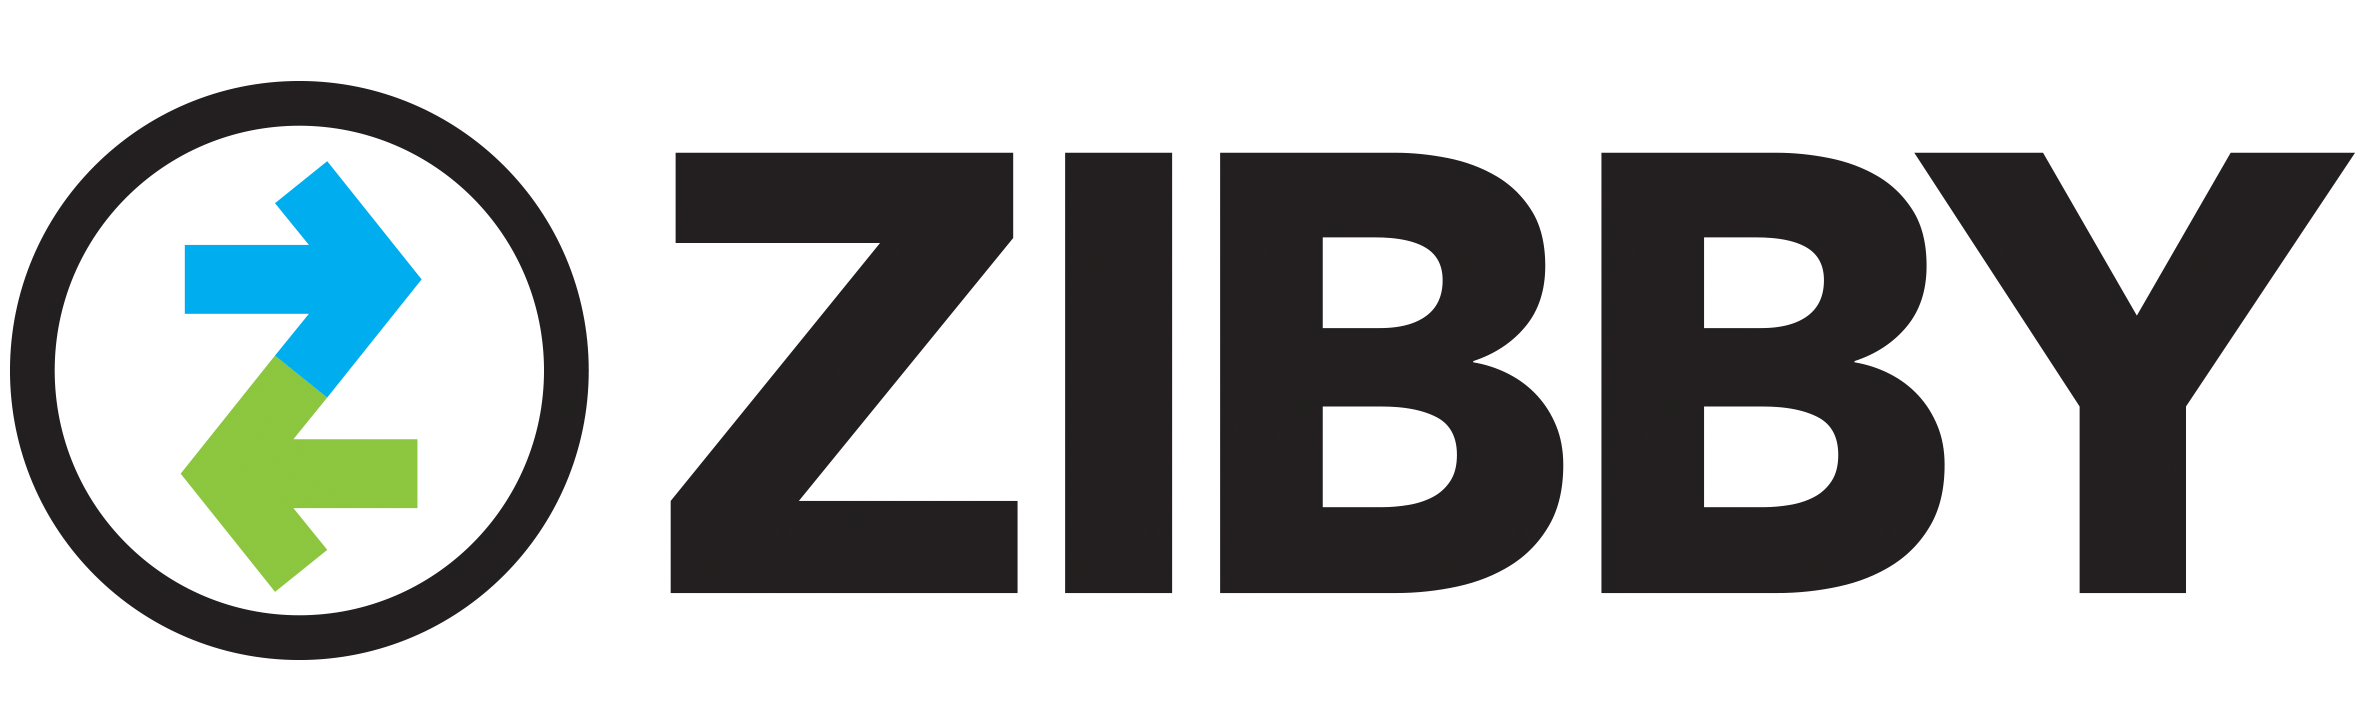 Buy Tires Online >> How To Buy Tires Online With Zibby Tire Agent